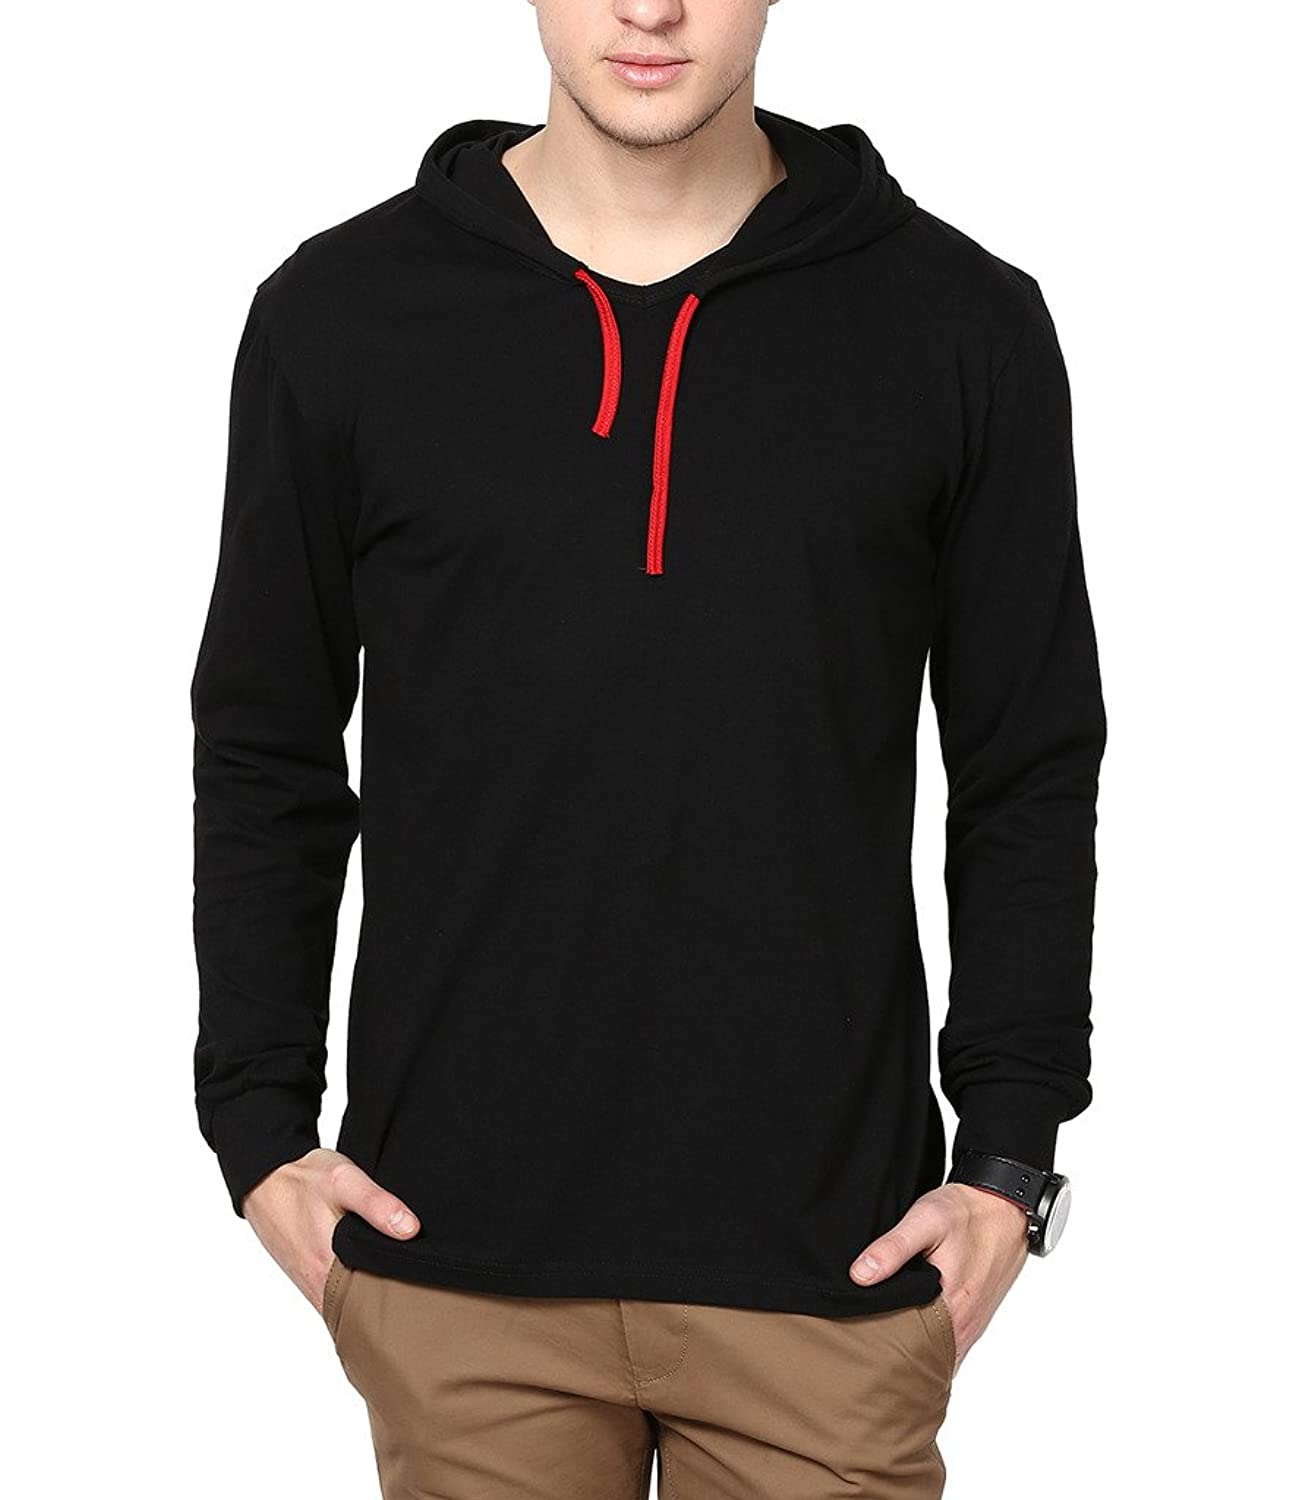 Inkovy full sleeve men s cotton hooded t shirt amazon in clothing accessories